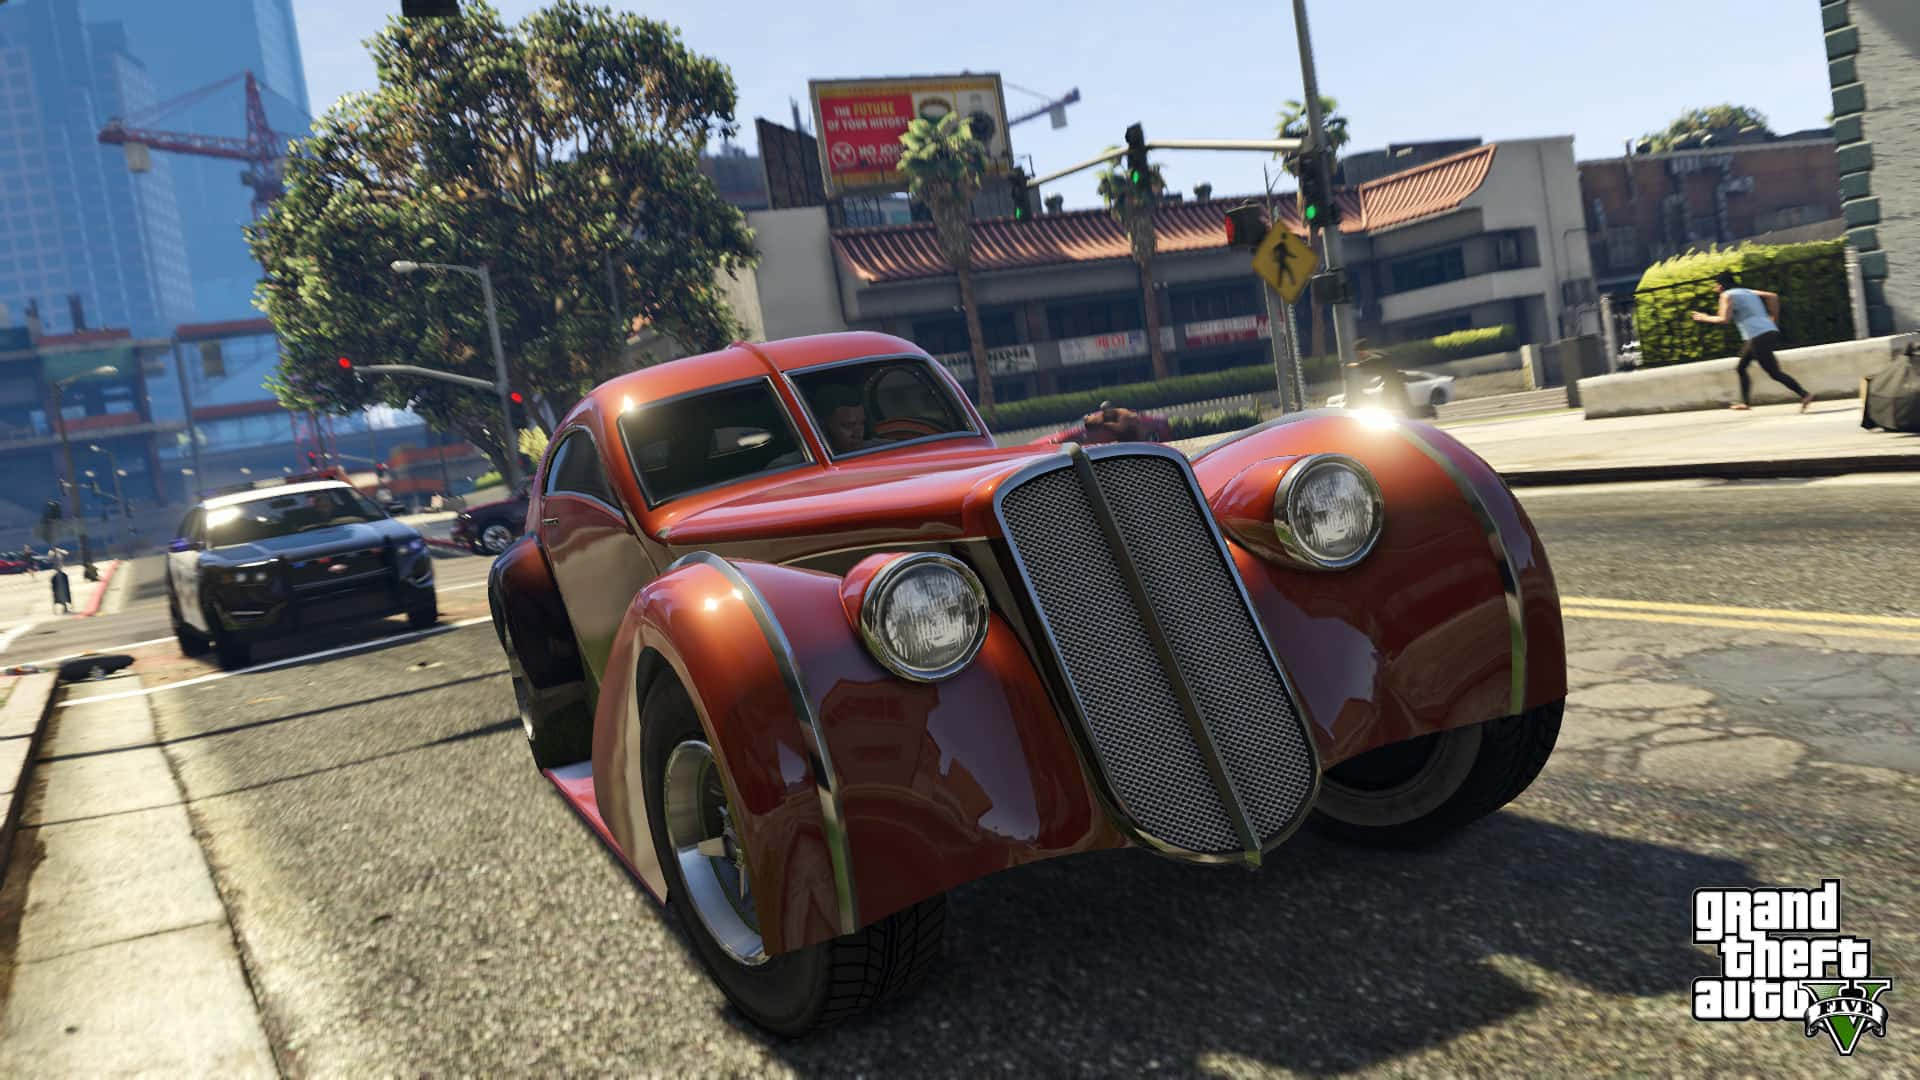 gta v pc to xbox one character transfer